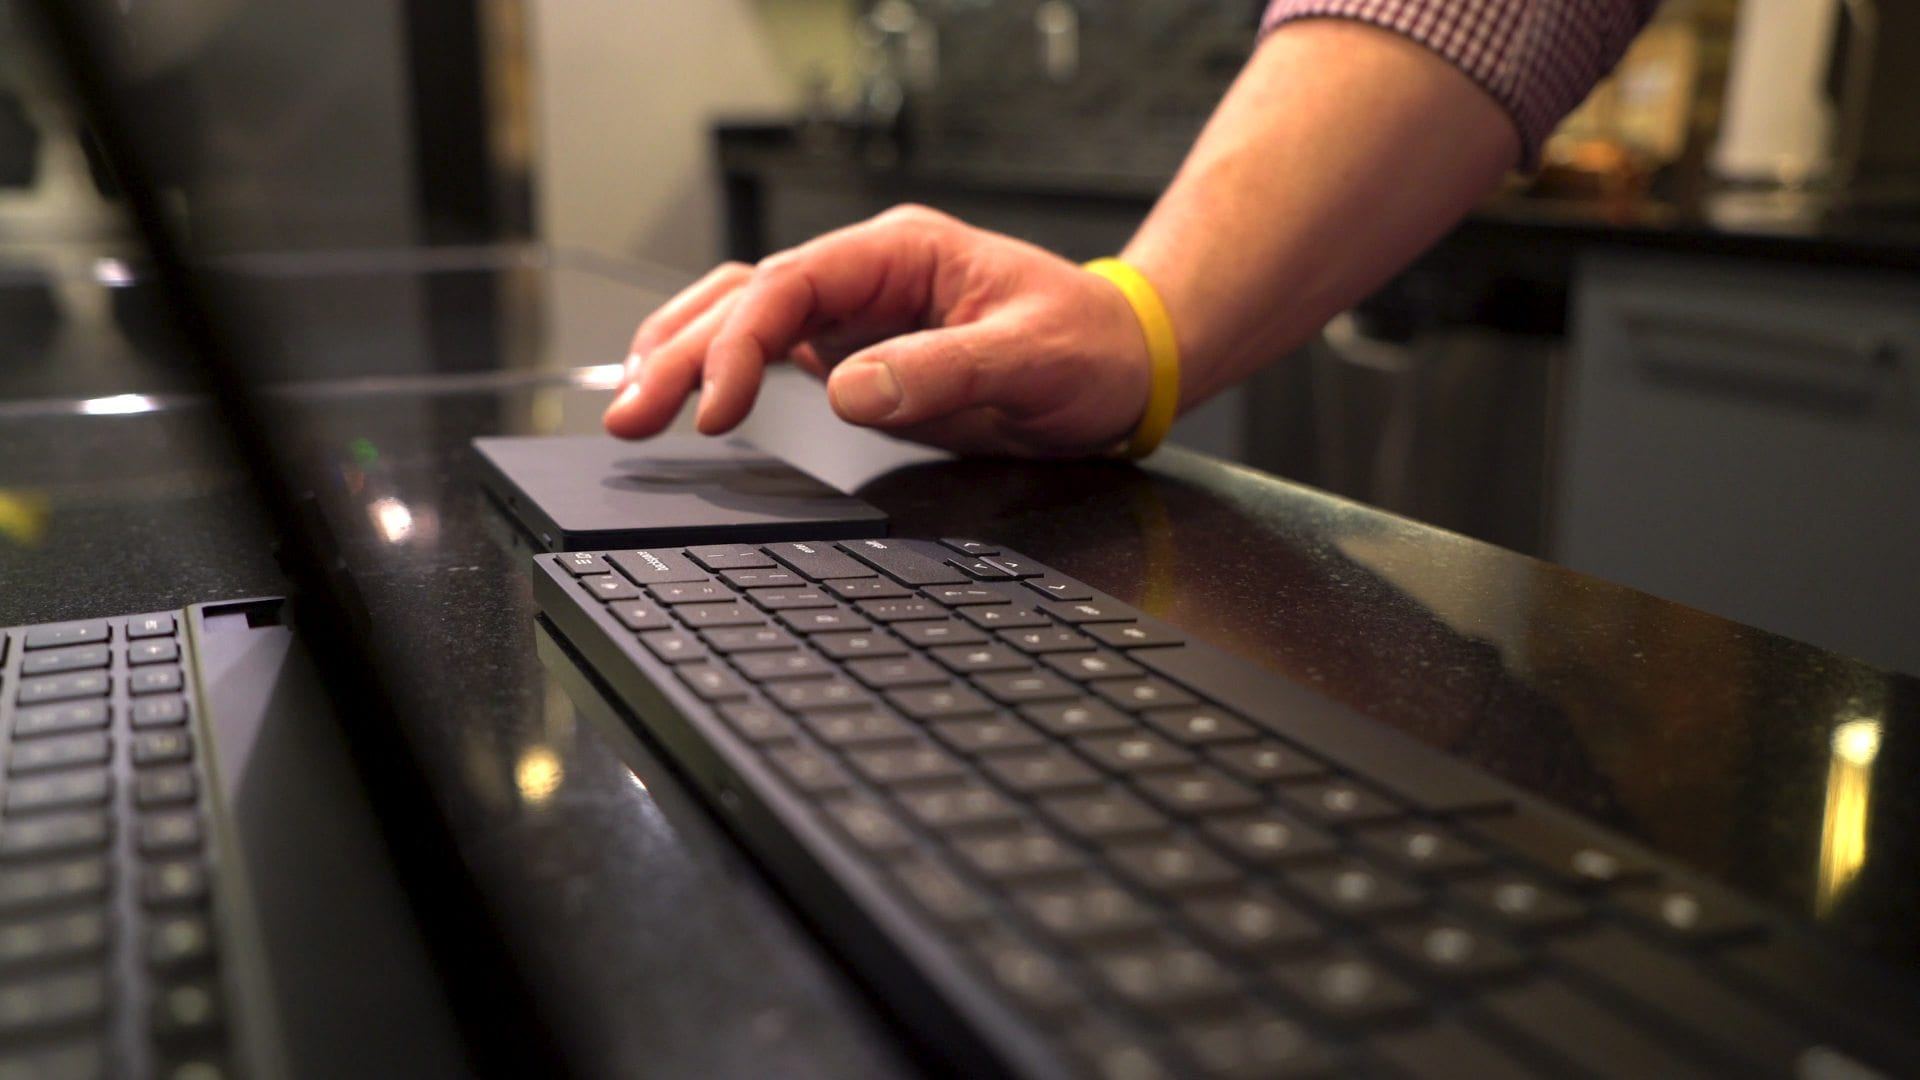 Exclusive: Brydge Debuts First-Ever Wireless Bluetooth Touchpad and Keyboard Made For Chromebooks [VIDEO]